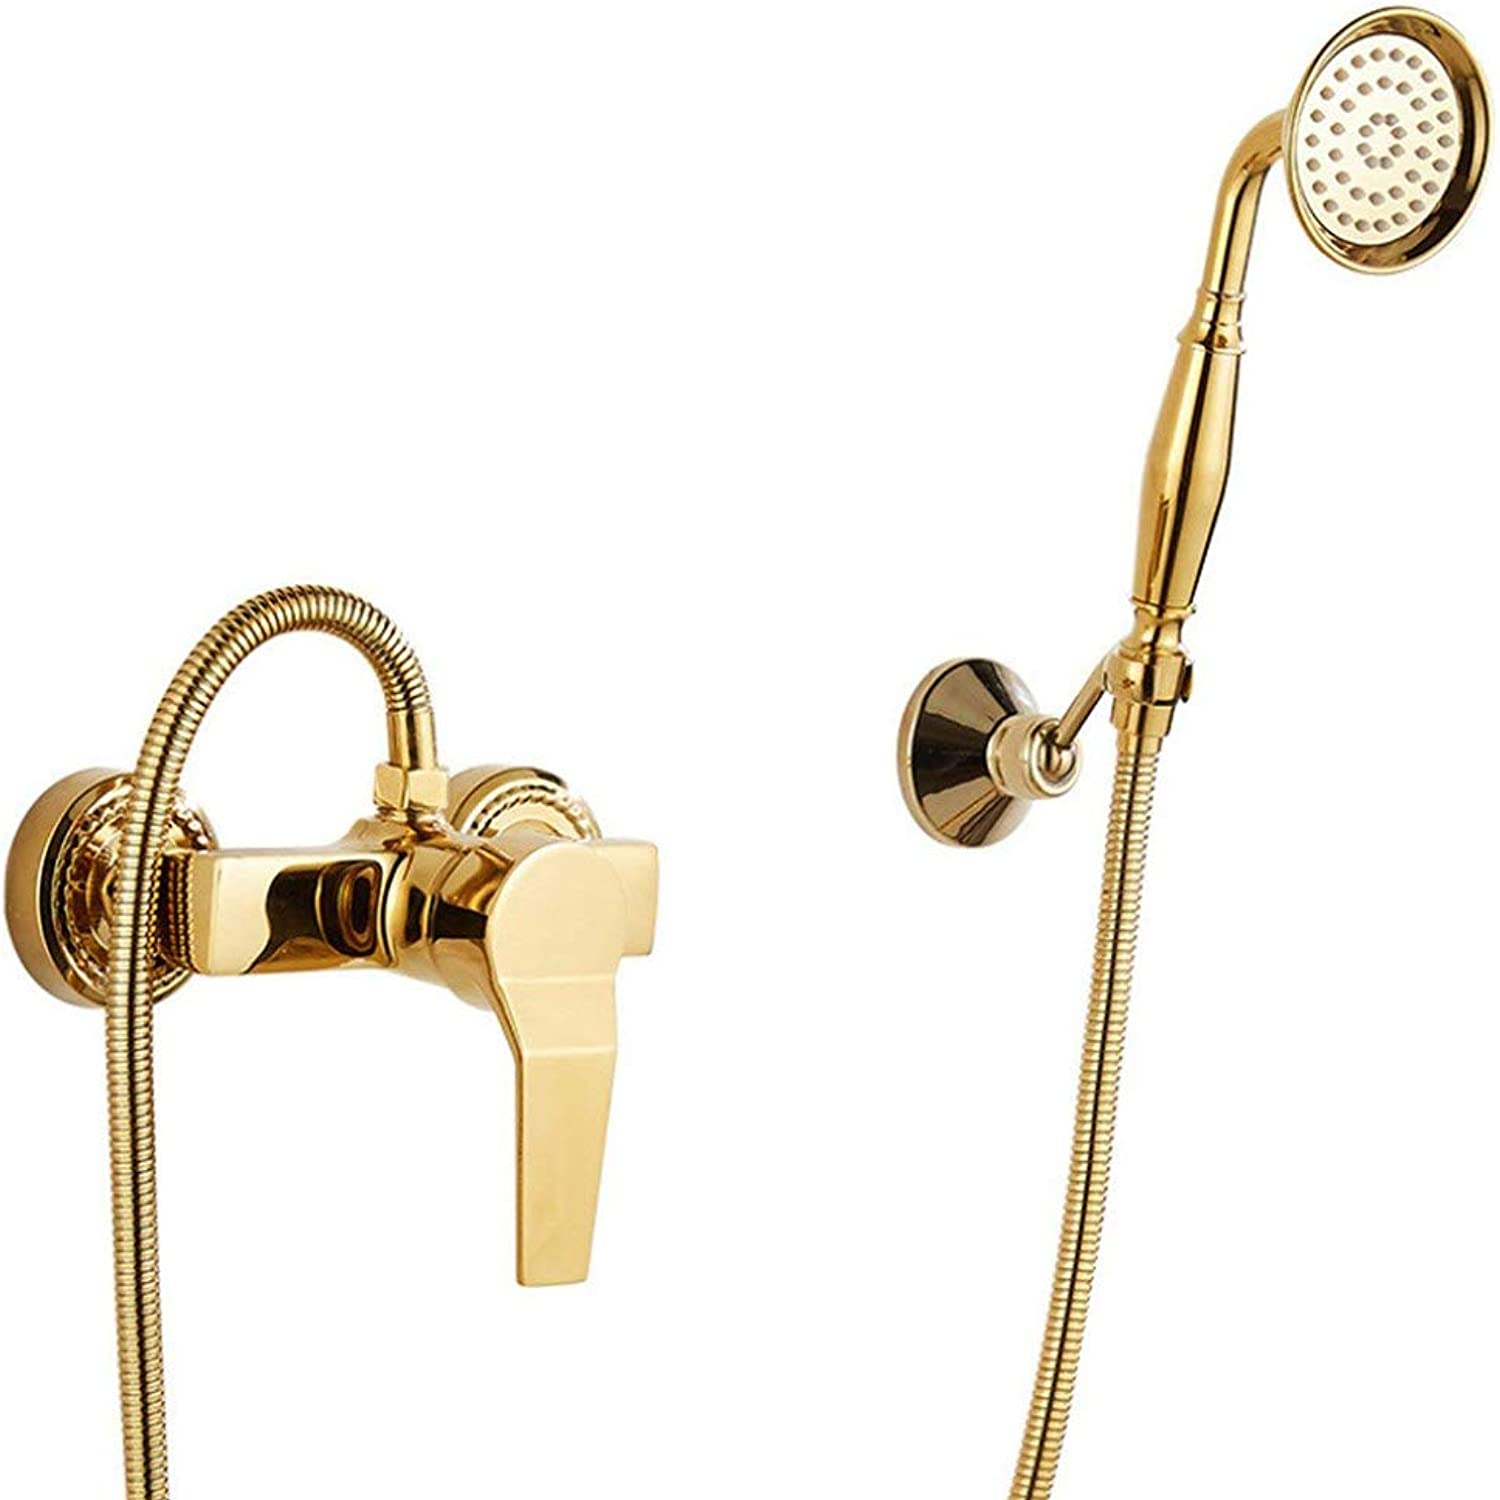 Shower set European gold, Simple Wall Bathroom Shower System With Handheld Shower,Antique Copper XXBB